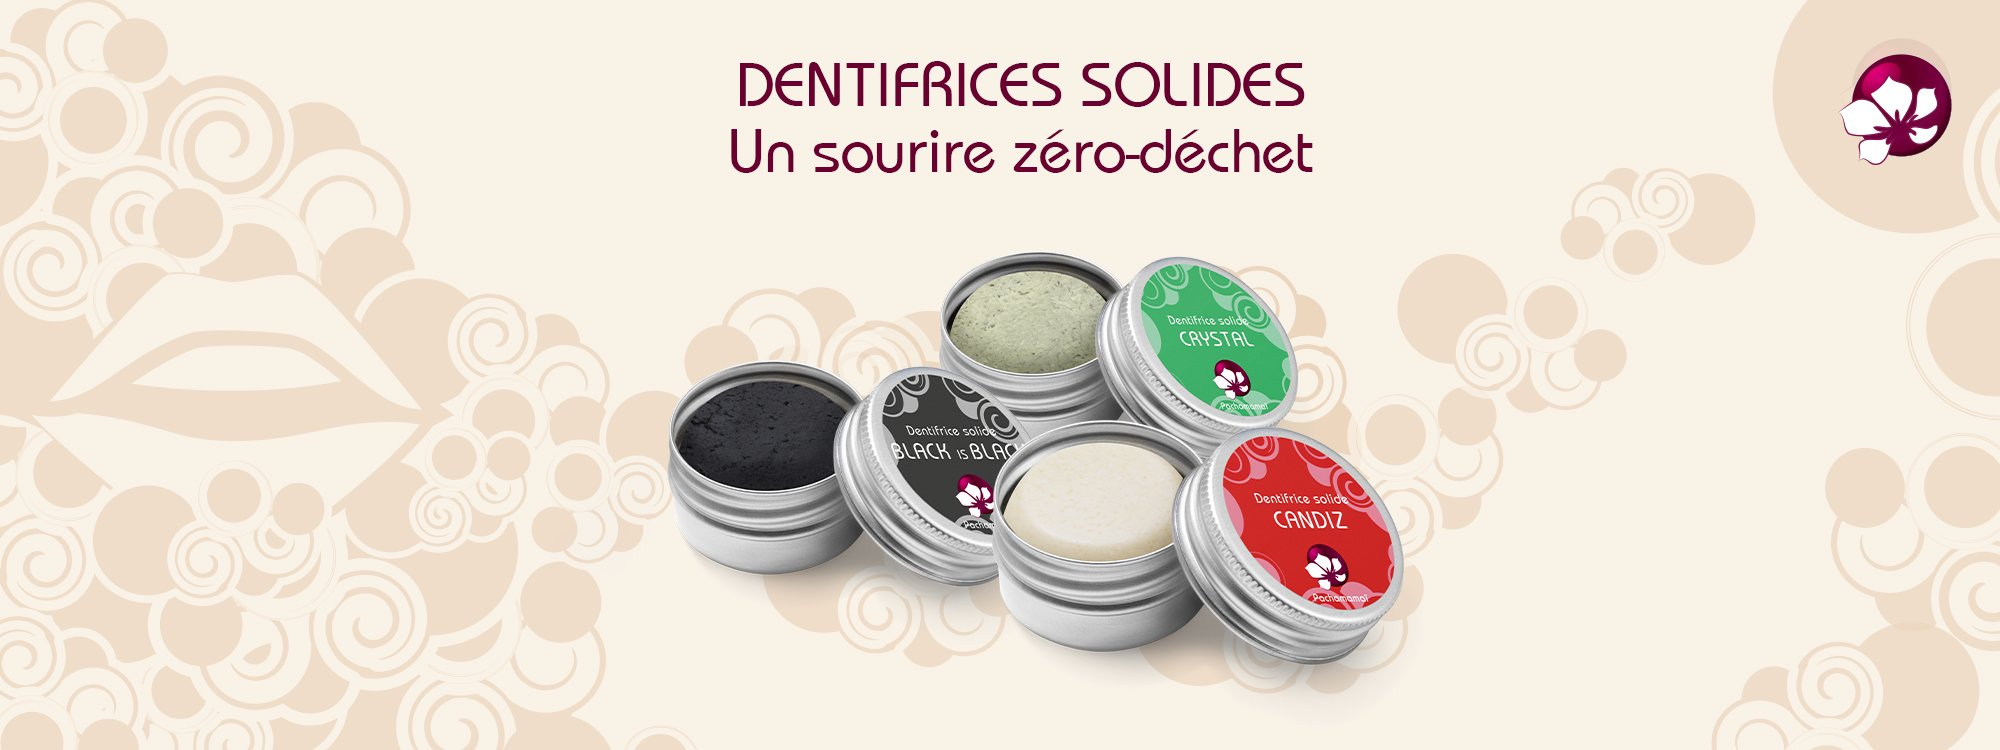 Dentifrices solides